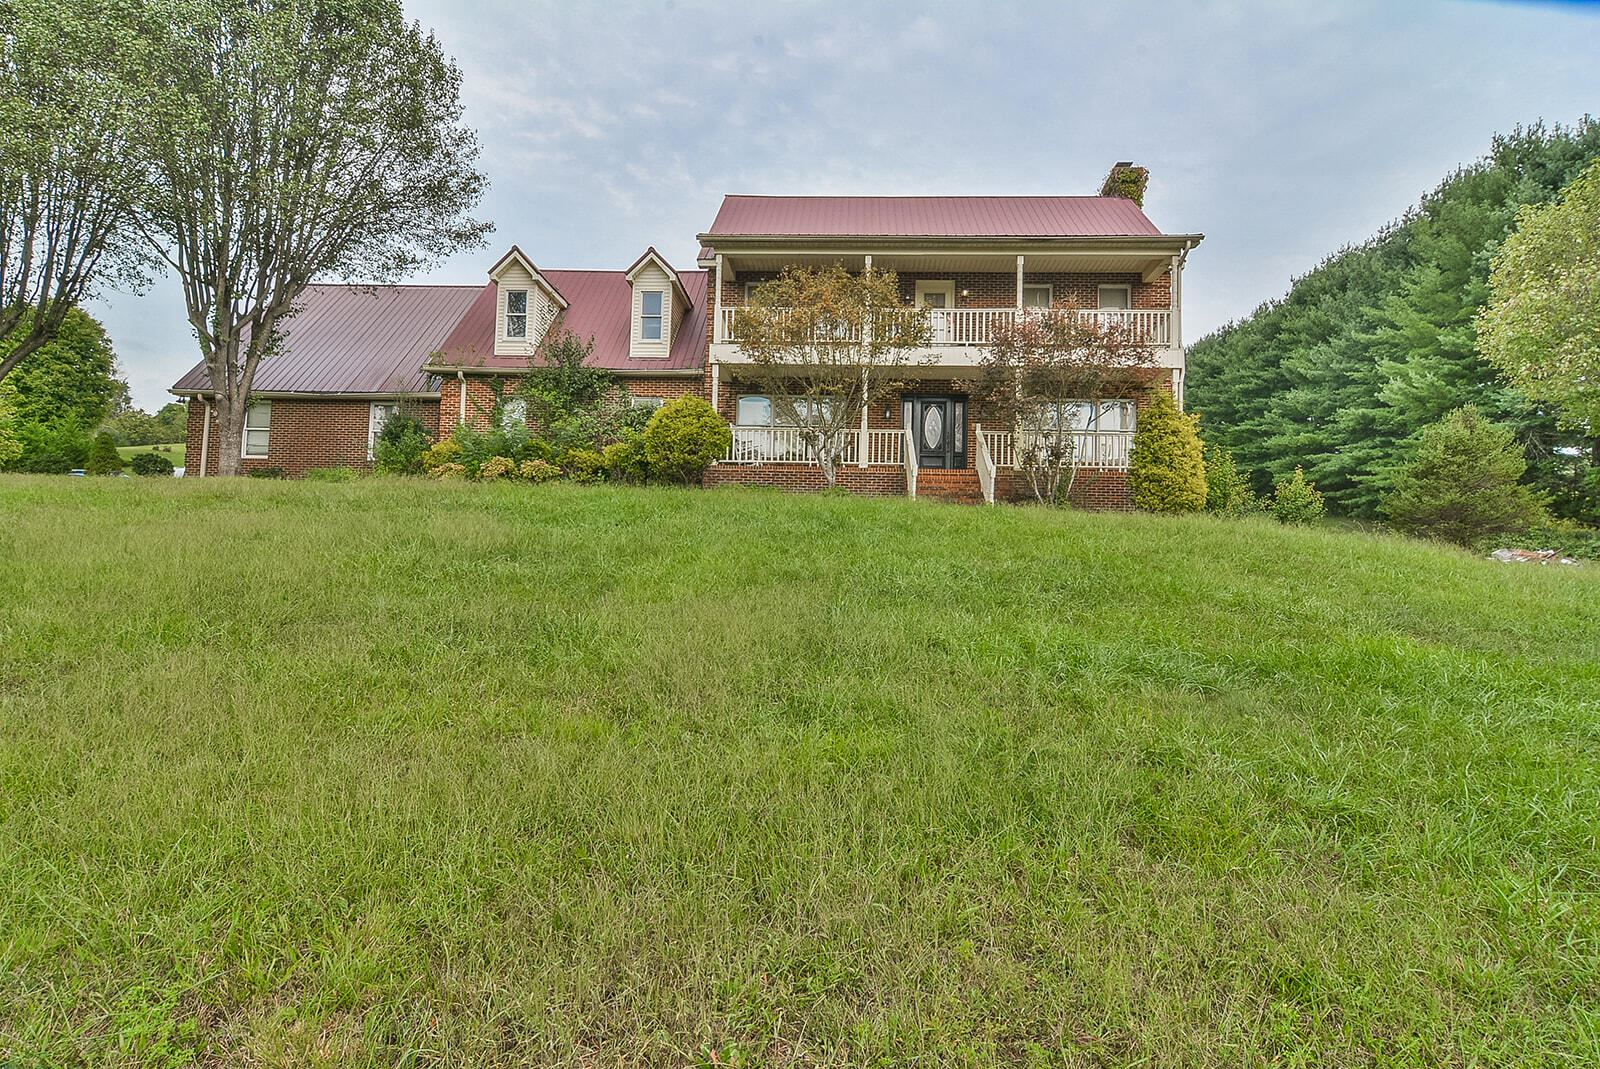 Photo of 2530 North Holston River Drive Extension, Kingsport, TN 37660 (MLS # 9928652)